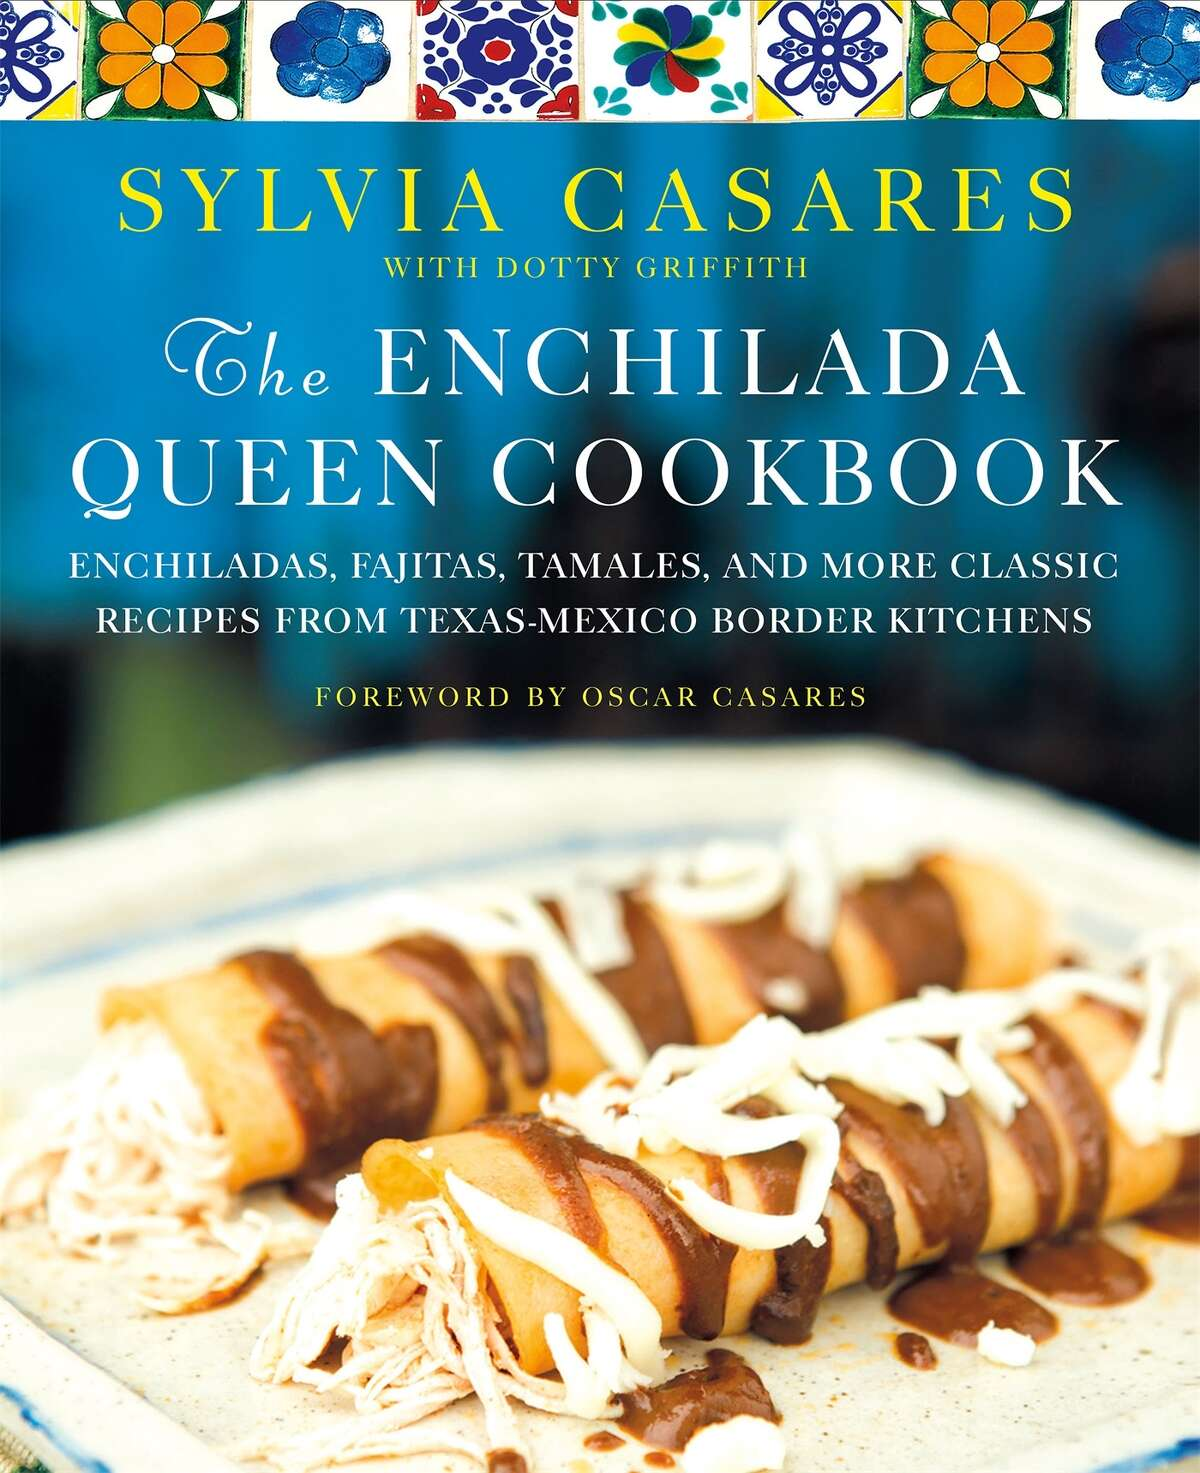 """Cover: """"The Enchilada Queen Cookbook"""" by Sylvia Casares with Dotty Griffith (St. Martin' Griffin)."""